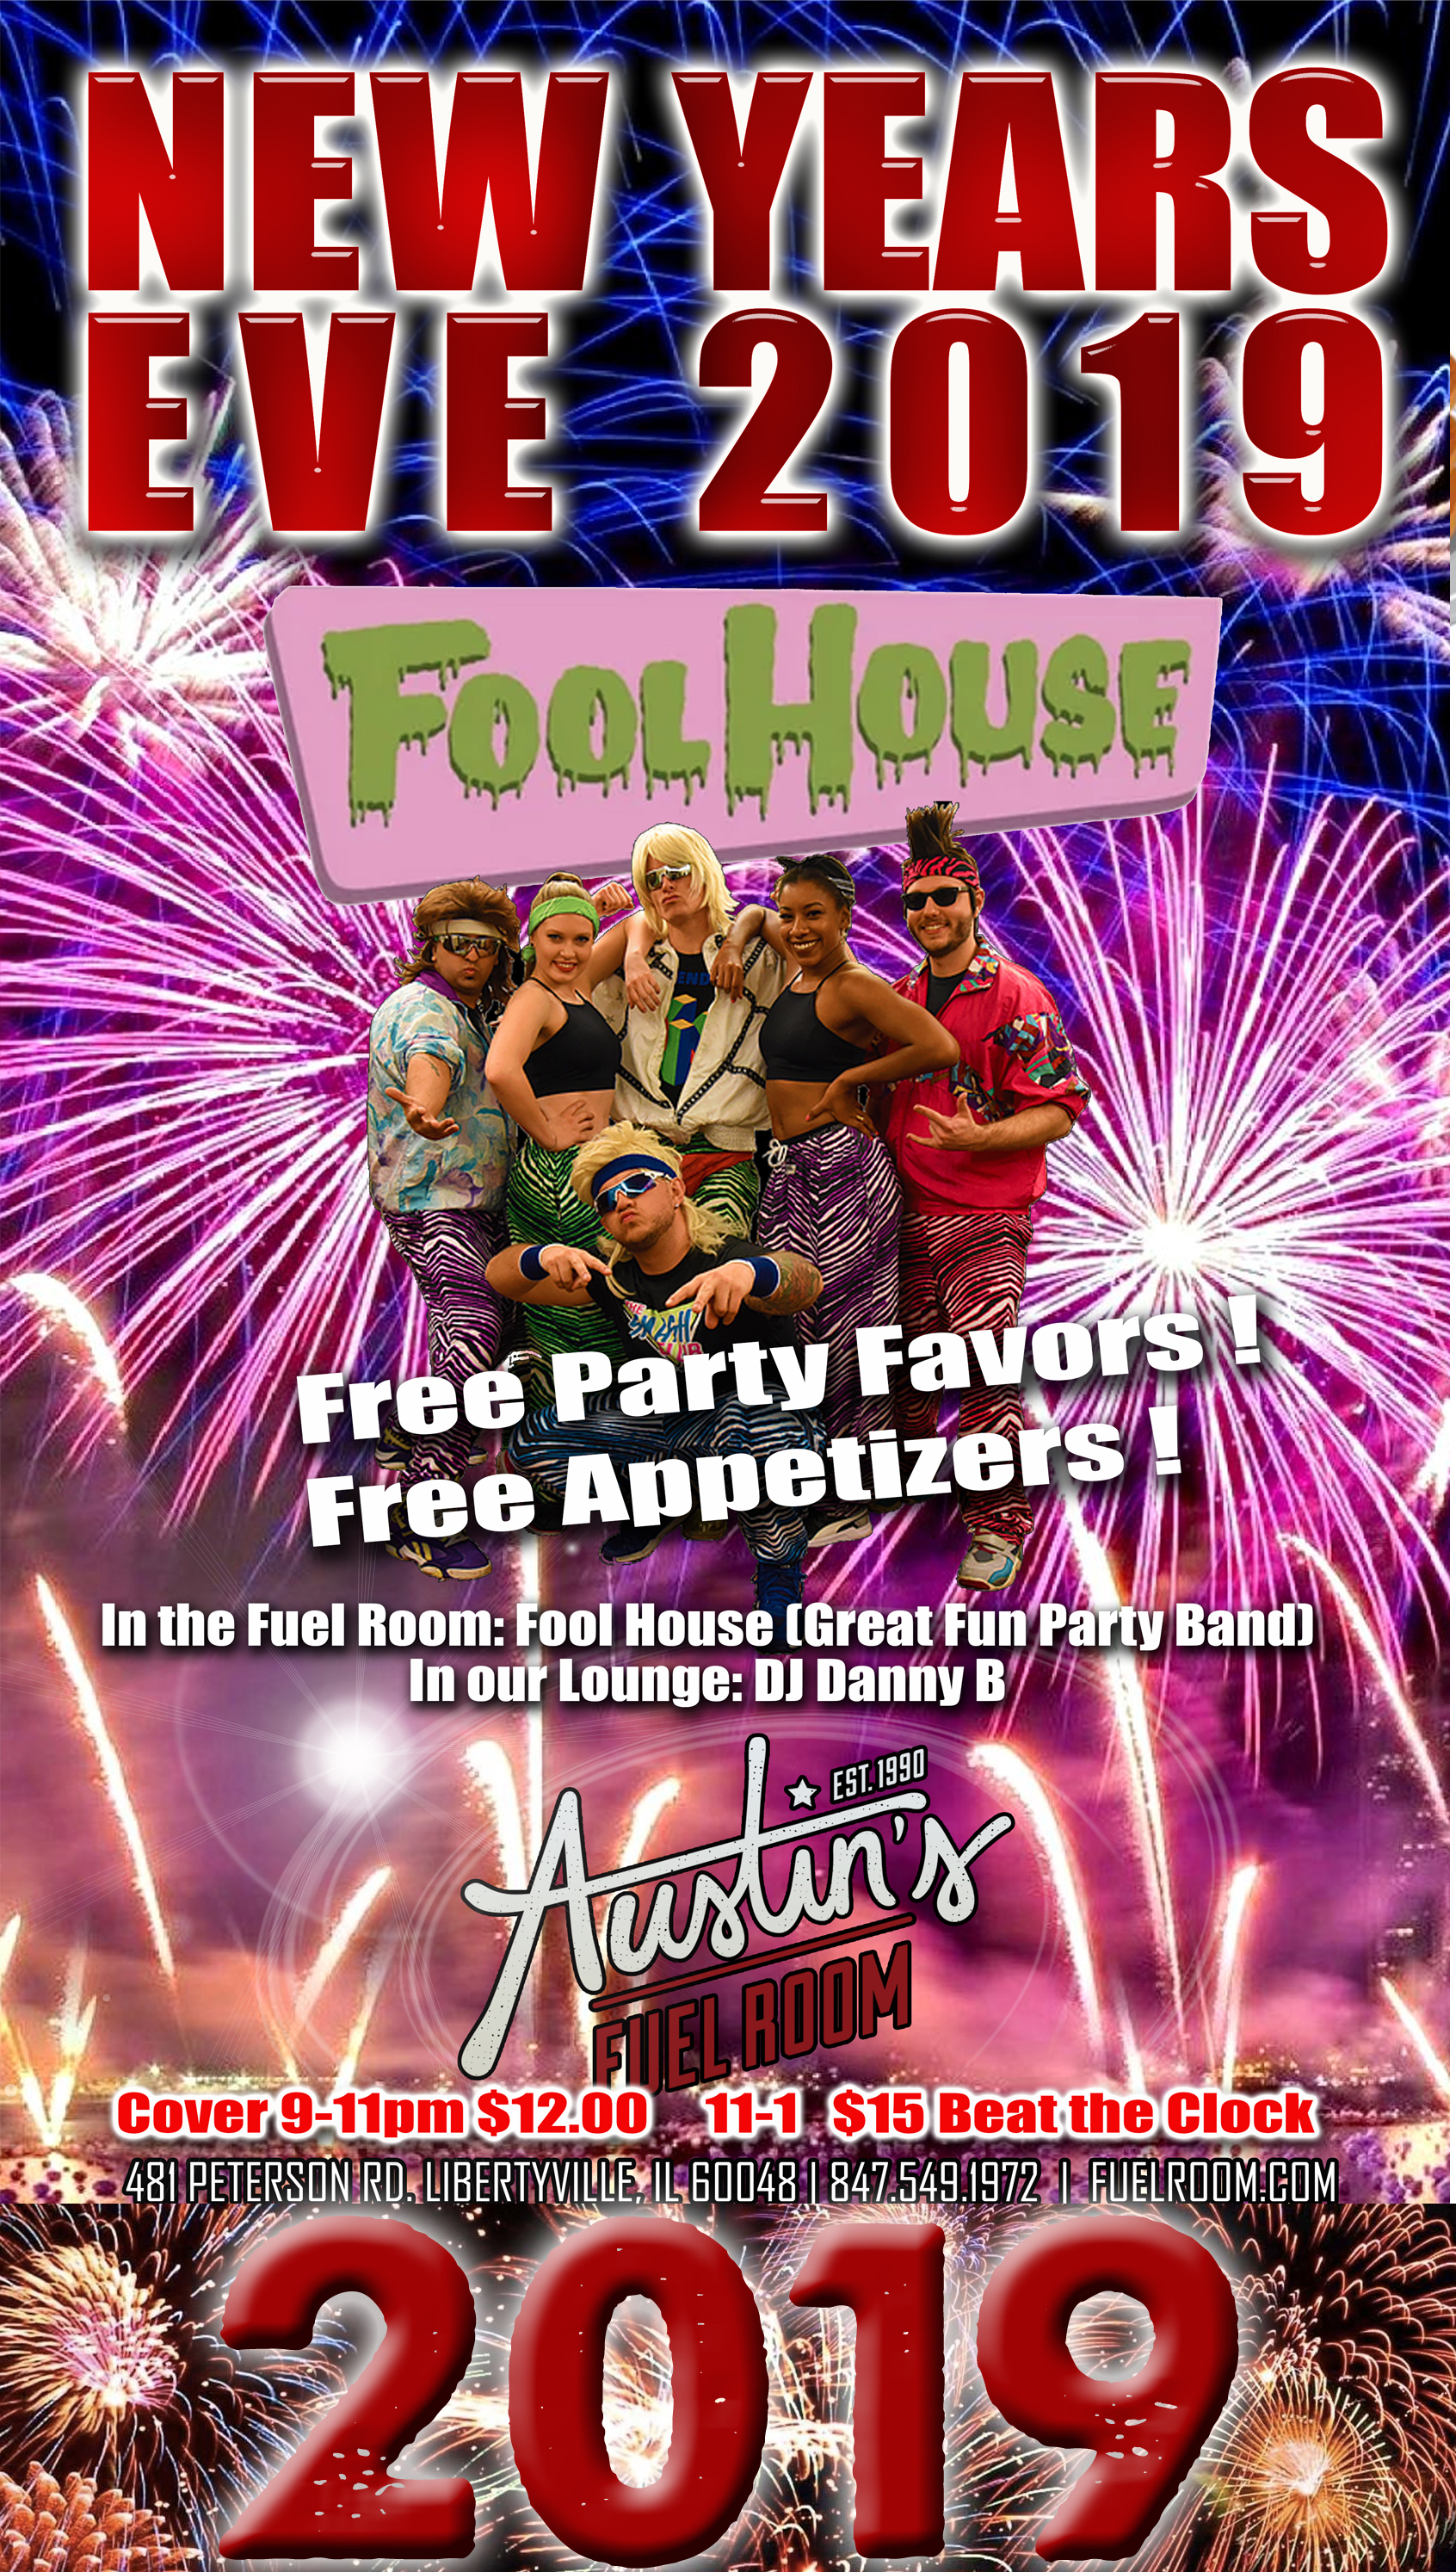 Get to the party before 11pm and the cover is only $12.00 Free appetizers from 9-10:30, Party favors, Fool House live in the Fuel Room DJ Danny In the lounge.